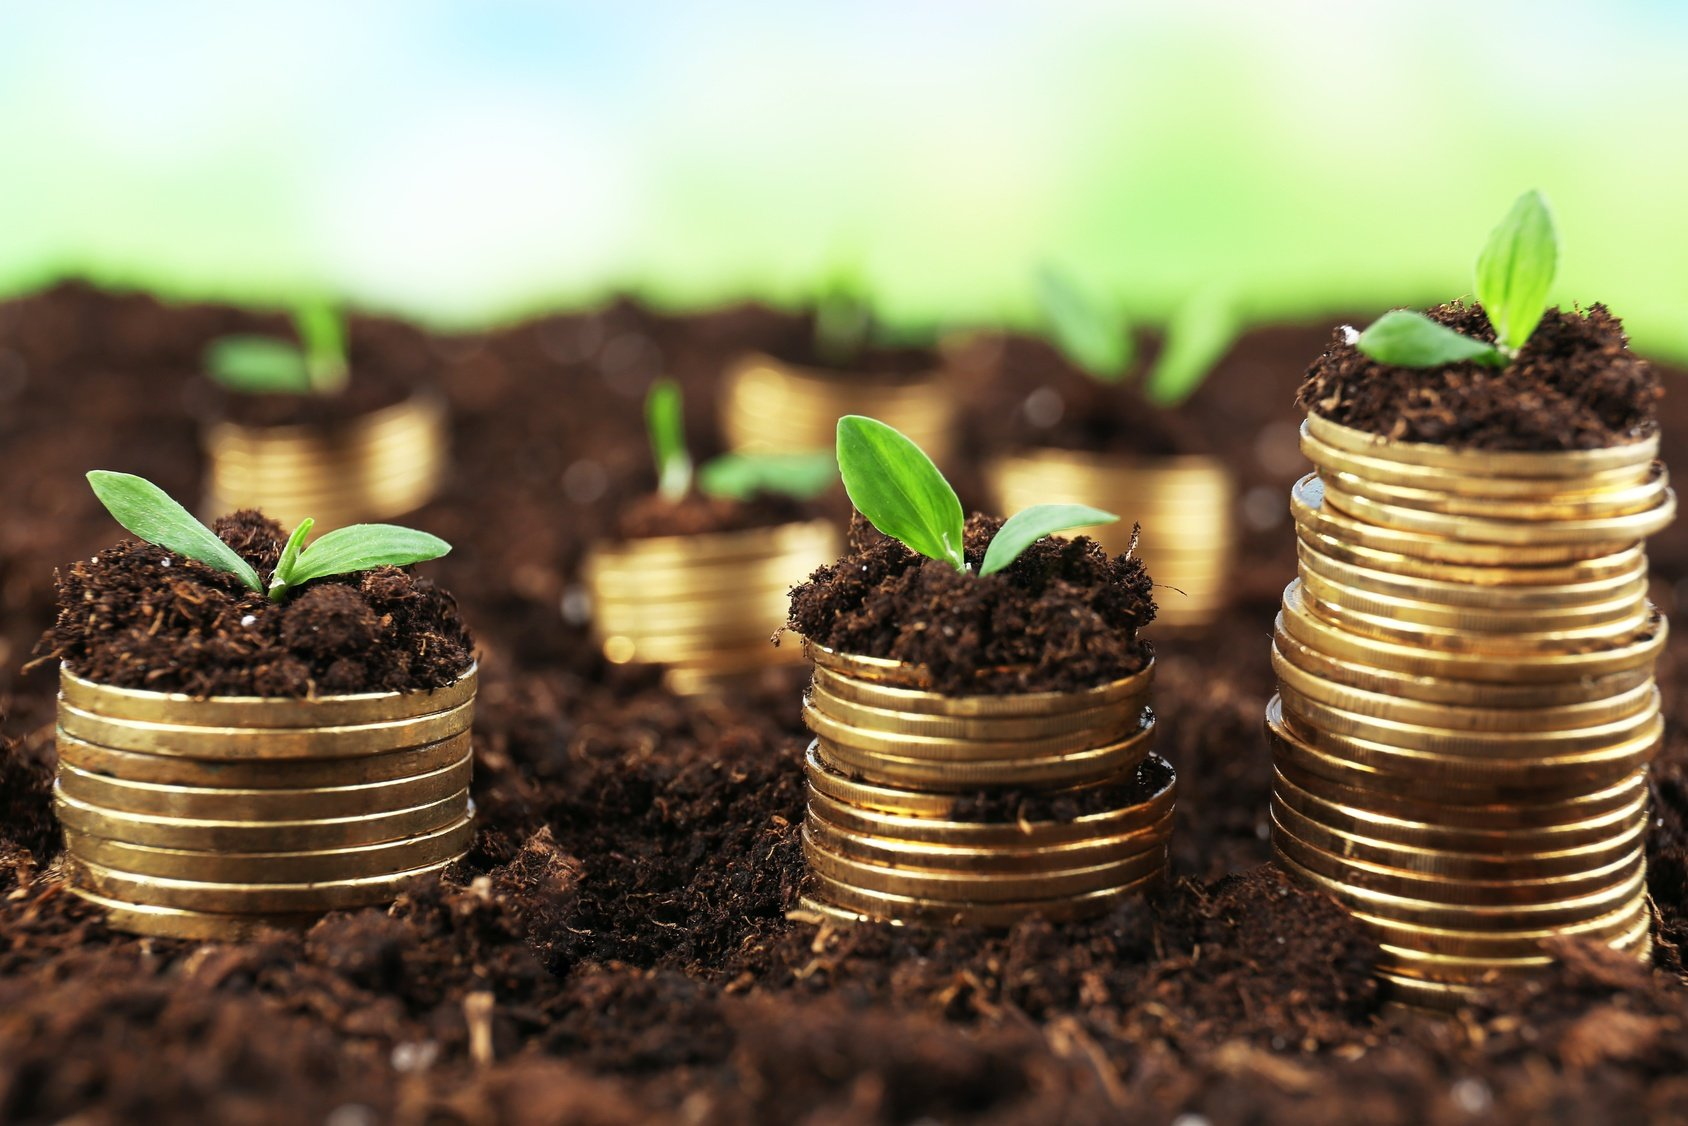 Why Going With the Cheapest Environmental Firm May Hurt You in the Long Run